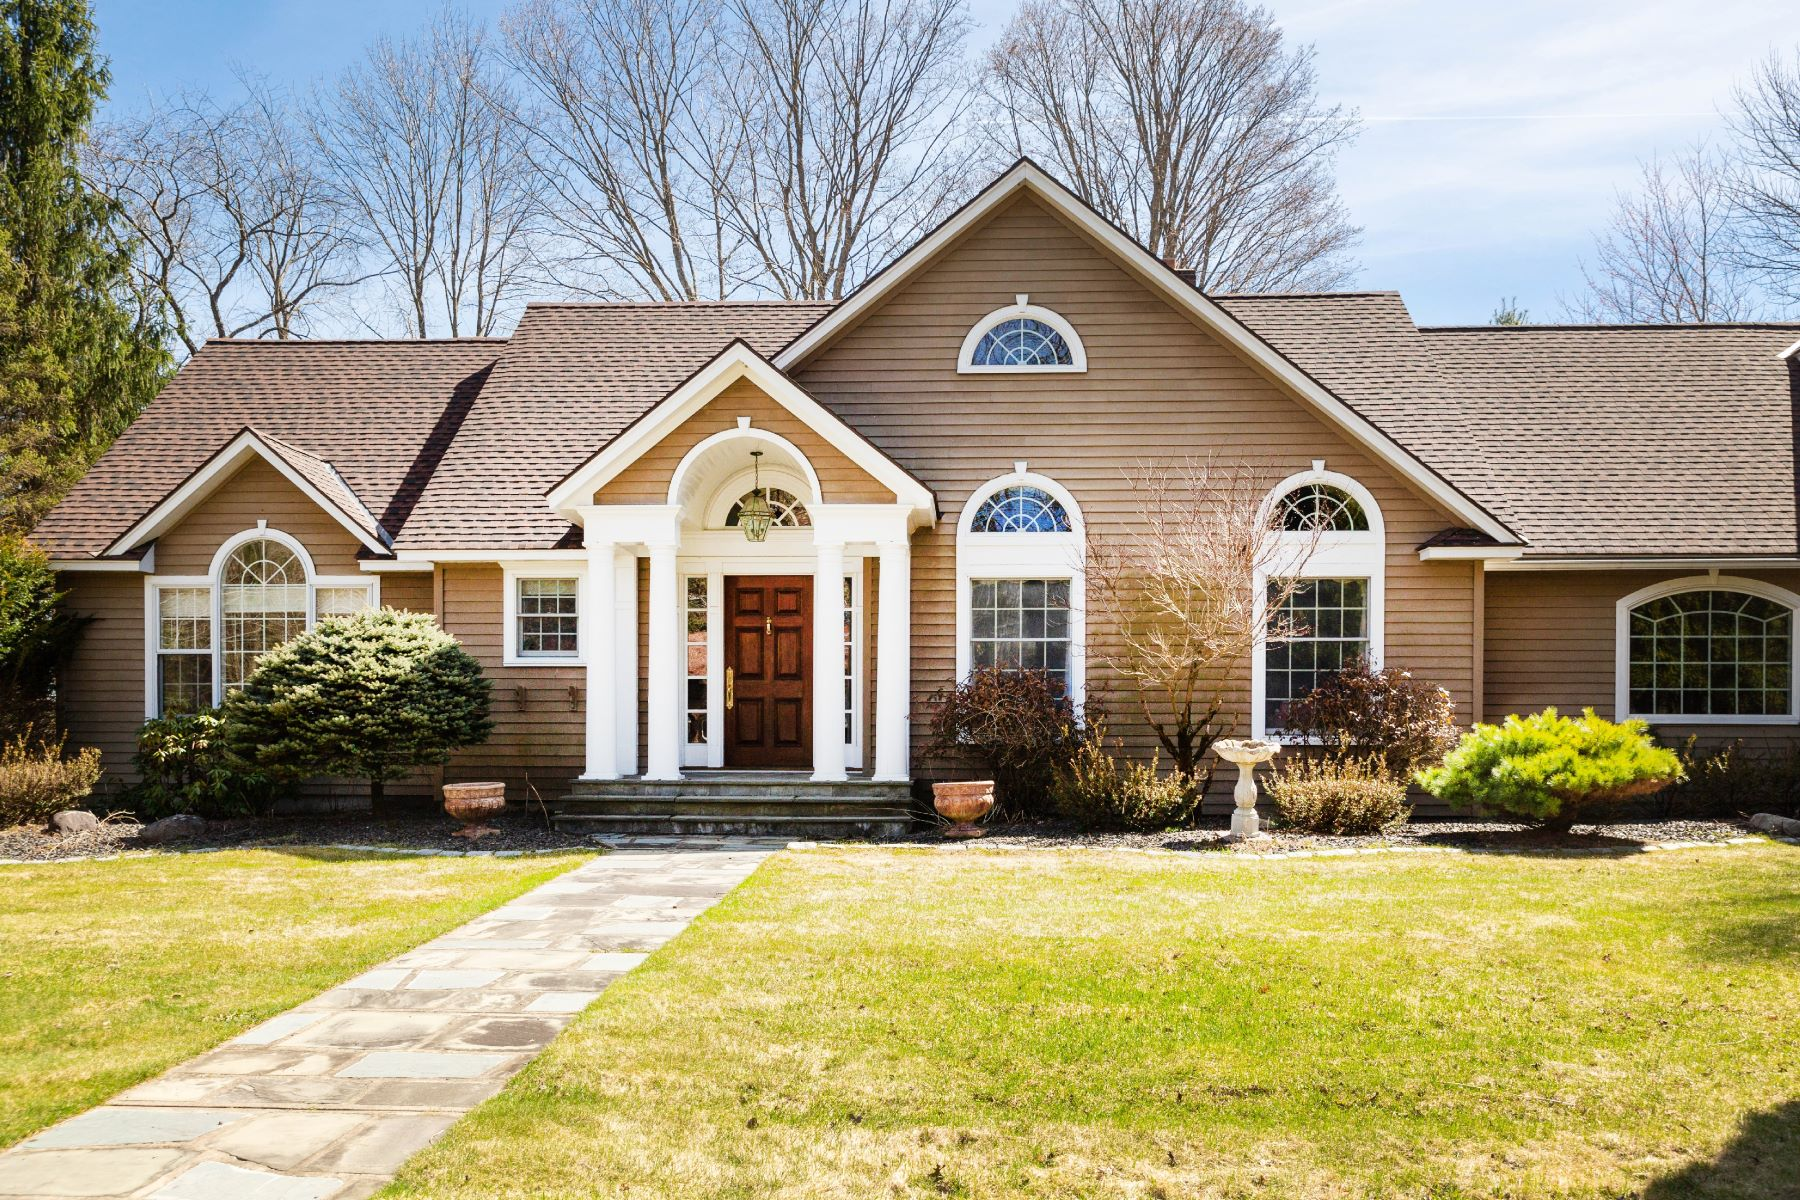 Single Family Homes for Active at Executive Home in Upstate NY 33 Albea Dr Hagaman, New York 12086 United States